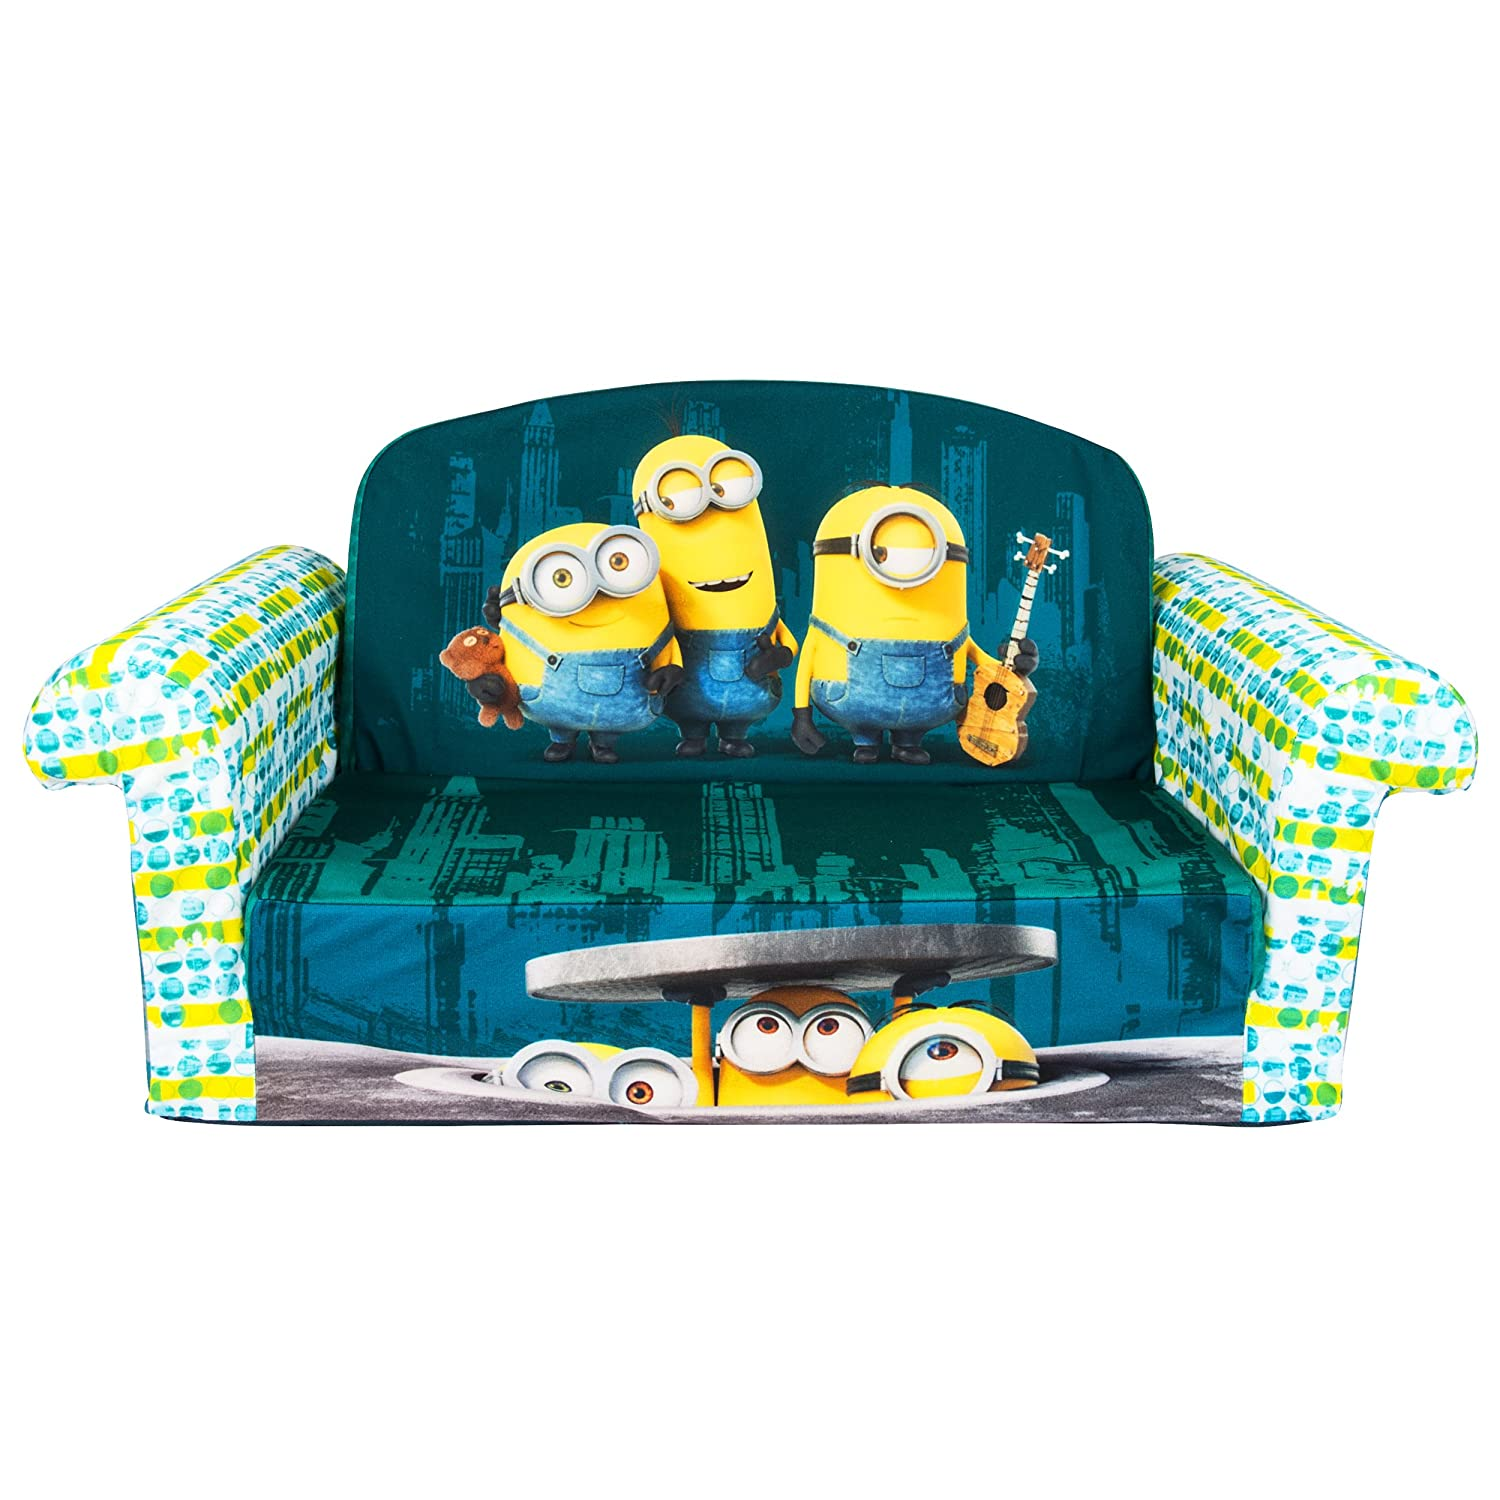 Marshmallow Furniture, Children's 2 in 1 Flip Open Foam Sofa, Despicable Me Minions, by Spin Master 6026495